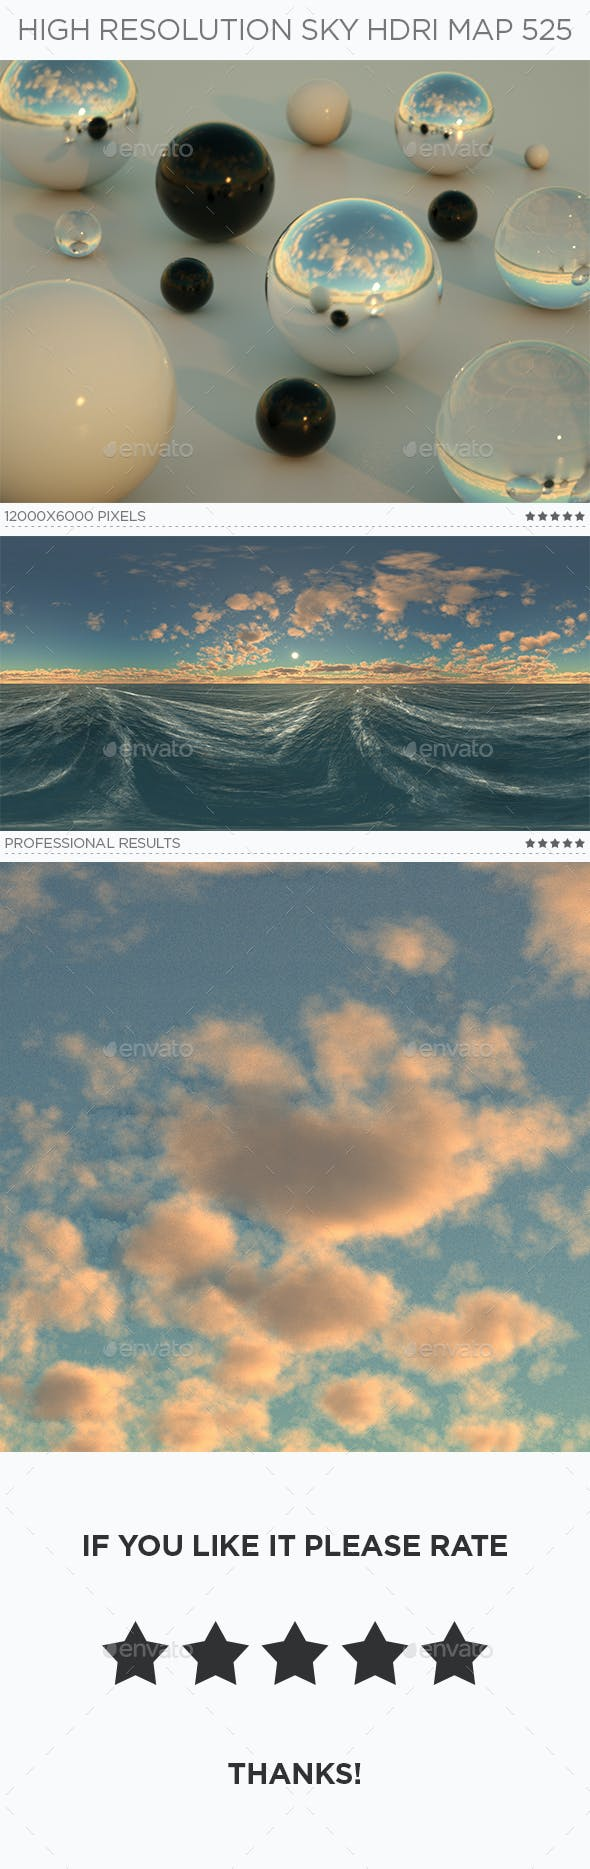 High Resolution Sky HDRi Map 525 - 3DOcean Item for Sale